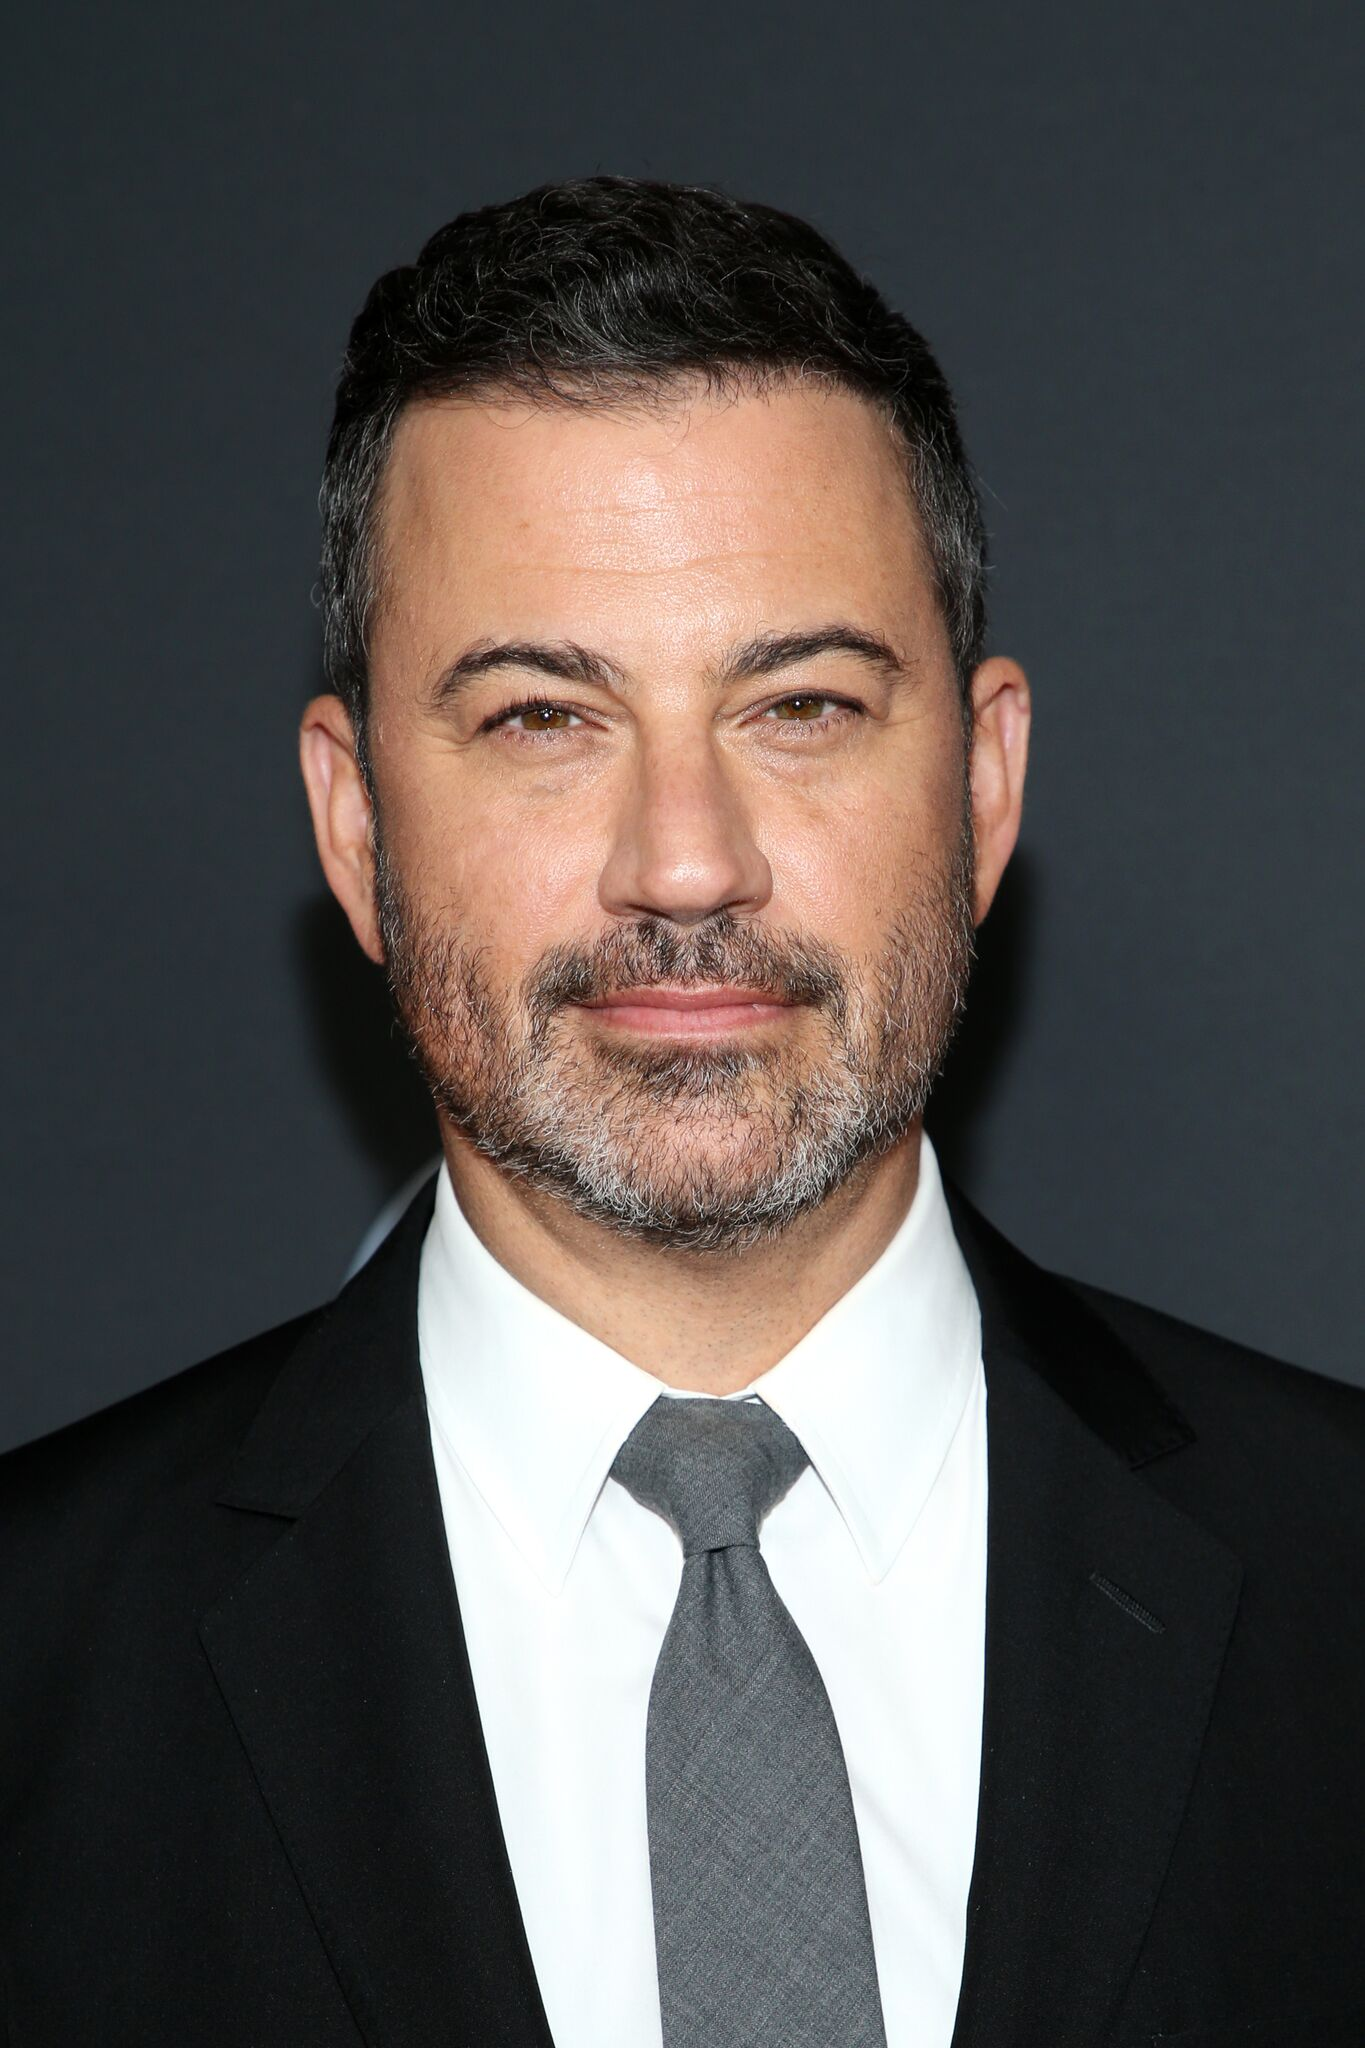 Jimmy Kimmel attends an evening with Jimmy Kimmel at Hollywood Roosevelt Hotel on August 07, 2019 | Photo: Getty Images